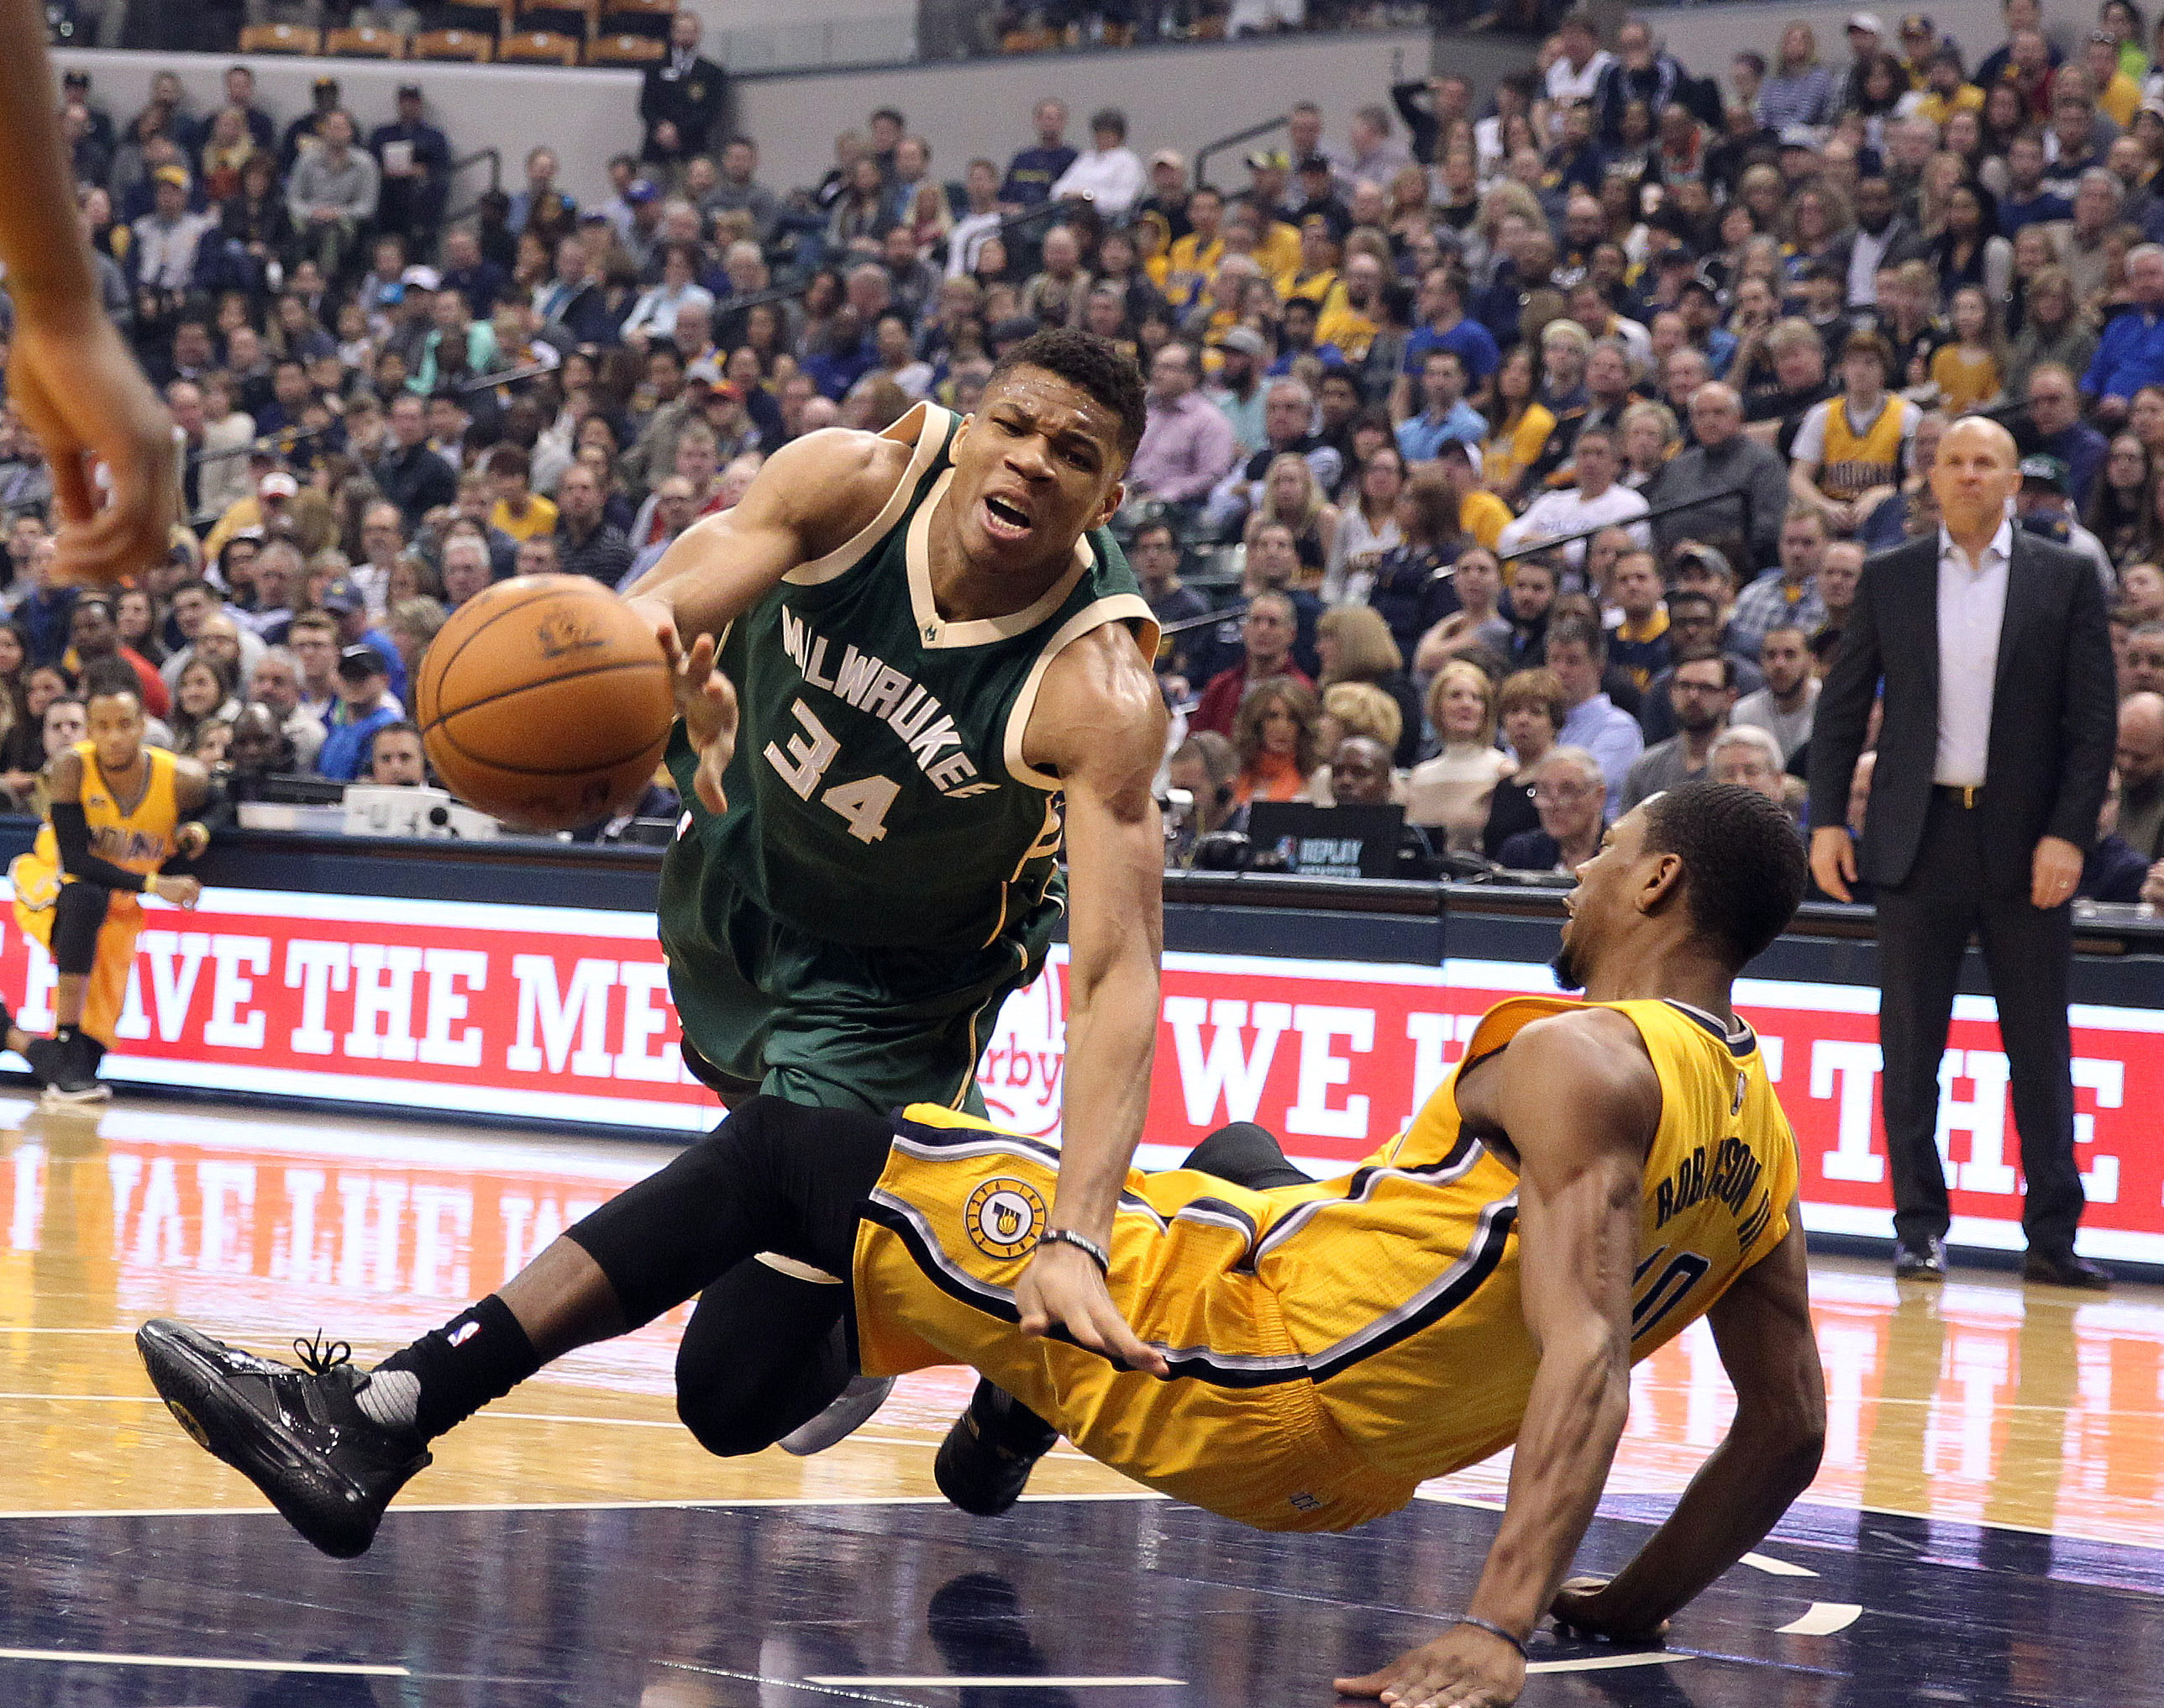 Feb 11, 2017; Indianapolis, IN, USA; Milwaukee Bucks forward Giannis Antetokounmpo (34) draws a blocking foul against Indiana Pacers forward Glenn Robinson III (40) at Bankers Life Fieldhouse. Mandatory Credit: Brian Spurlock-USA TODAY Sports